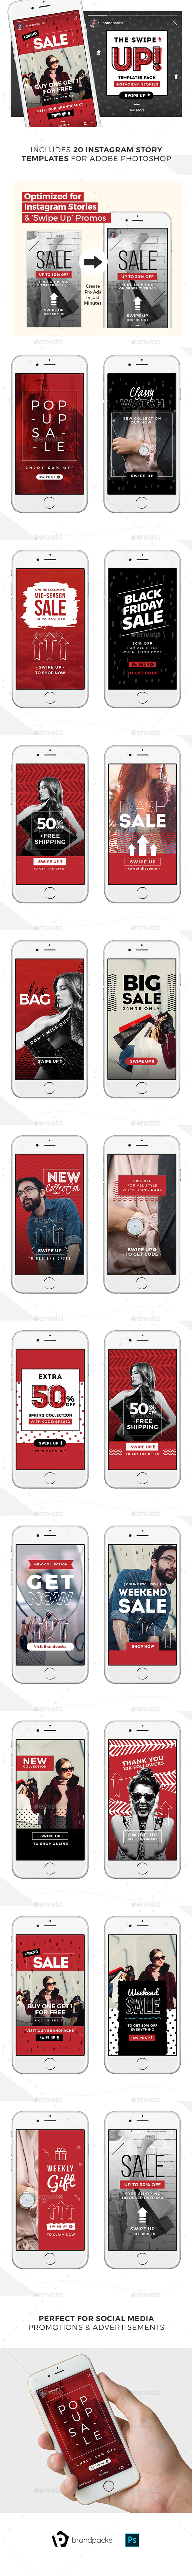 Swipe Up Instagram Story Templates Pack By Brandpacks Graphicriver In 2020 Instagram Story Template Instagram Story Ads Photographer Templates